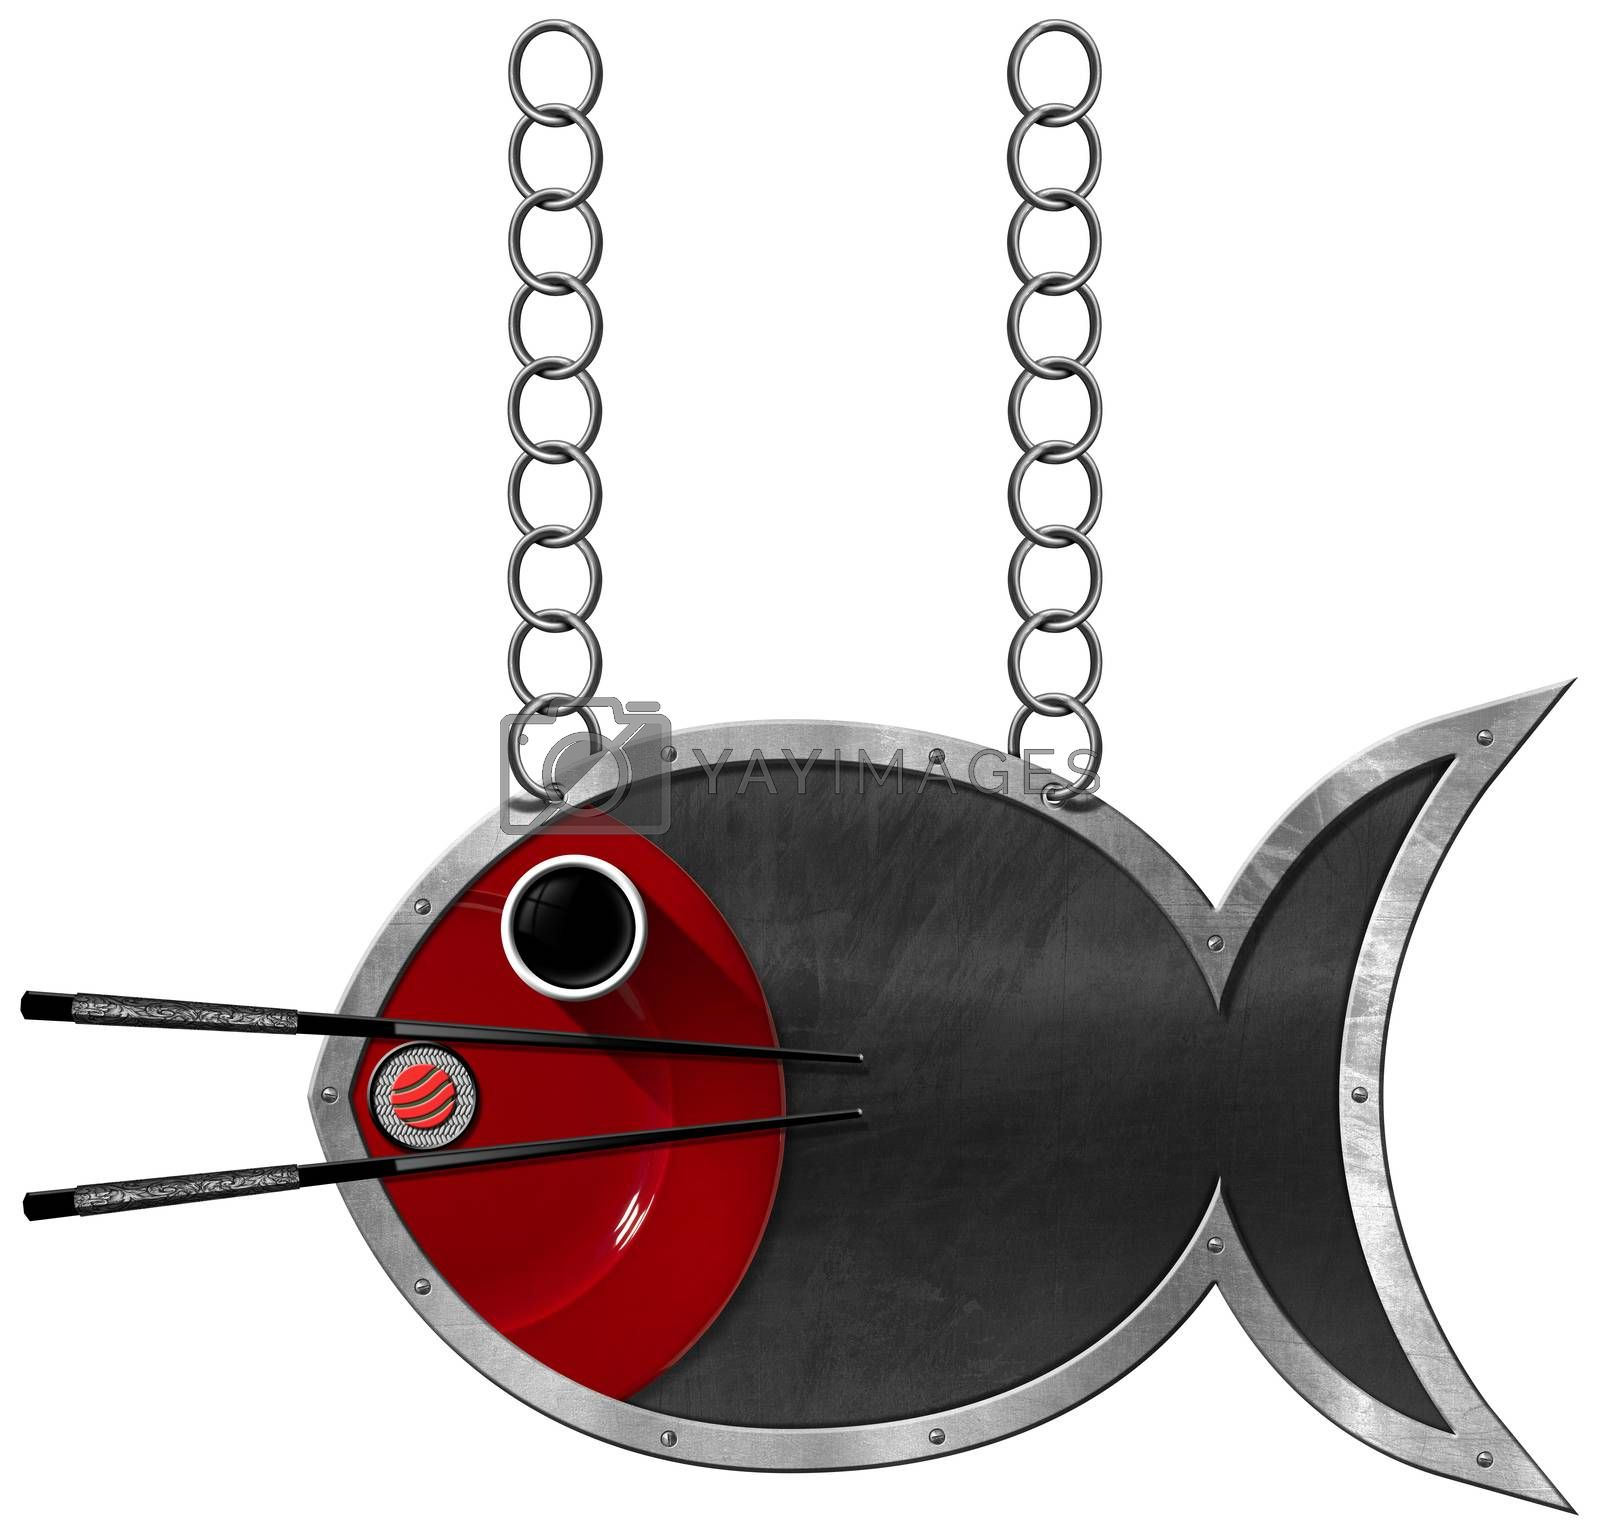 Blackboard with metal frame in the shape of fish, chopsticks, sushi roll, bowl of sauce and red plate. Template for a sushi menu